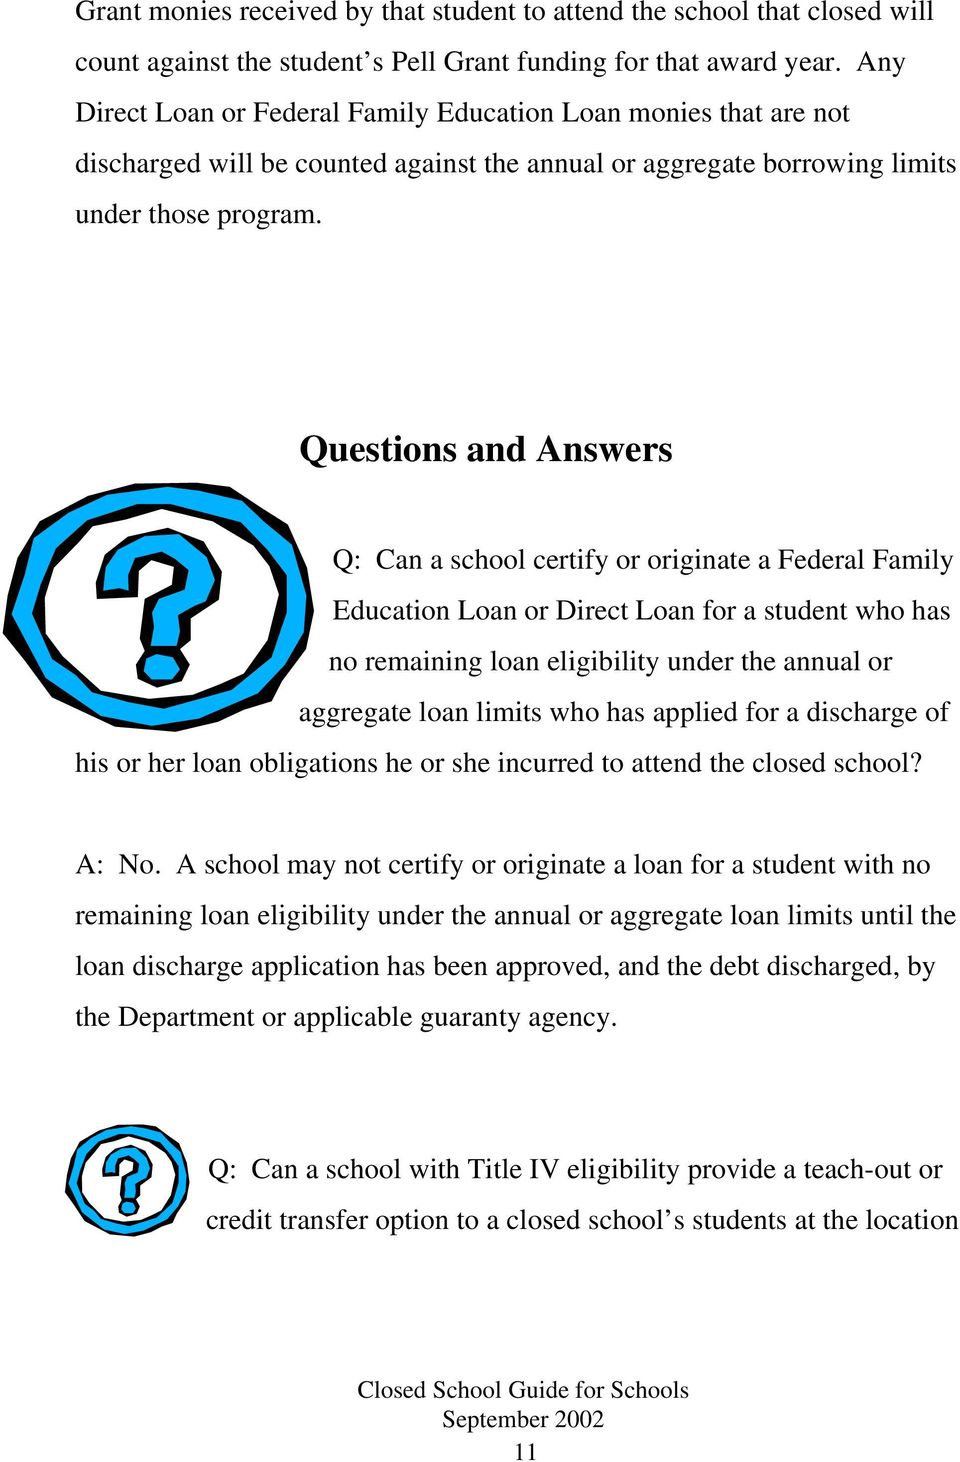 Questions and Answers Q: Can a school certify or originate a Federal Family Education Loan or Direct Loan for a student who has no remaining loan eligibility under the annual or aggregate loan limits